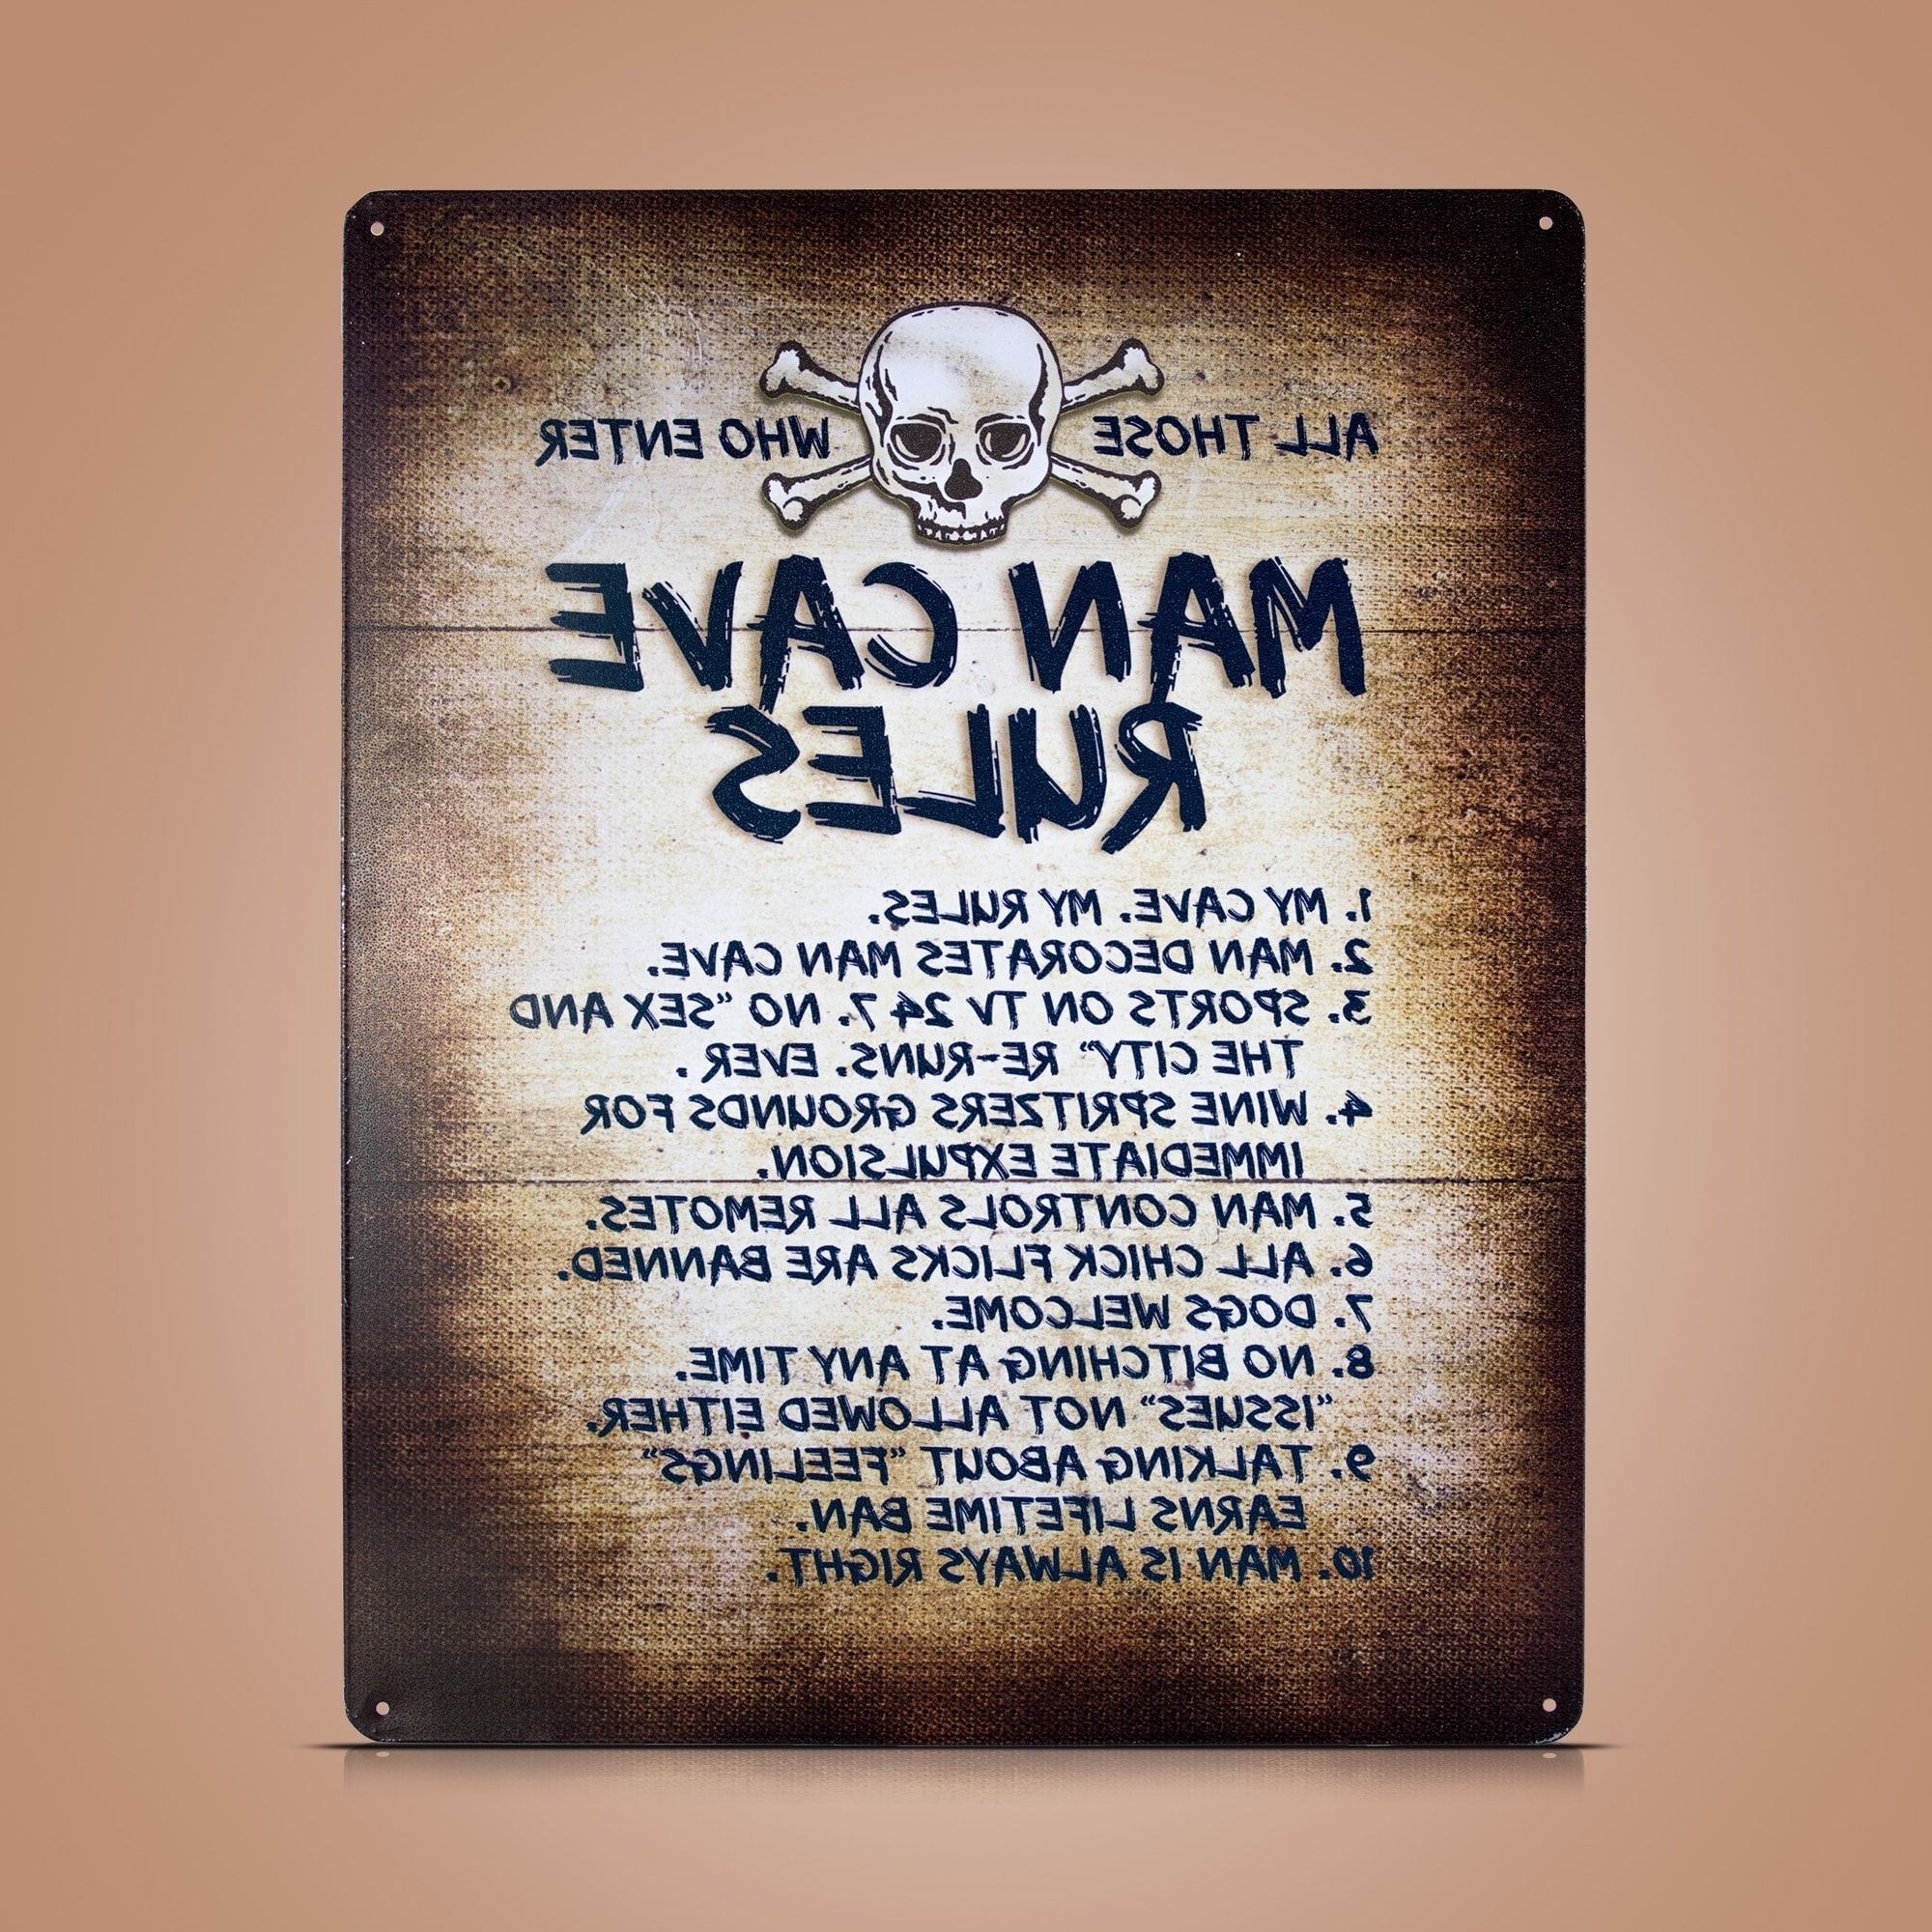 "2018 Man Cave Rules"" Metal Sign Wall Art For Bar Garage – Free Shipping Inside Wall Art For Bar Area (View 15 of 15)"